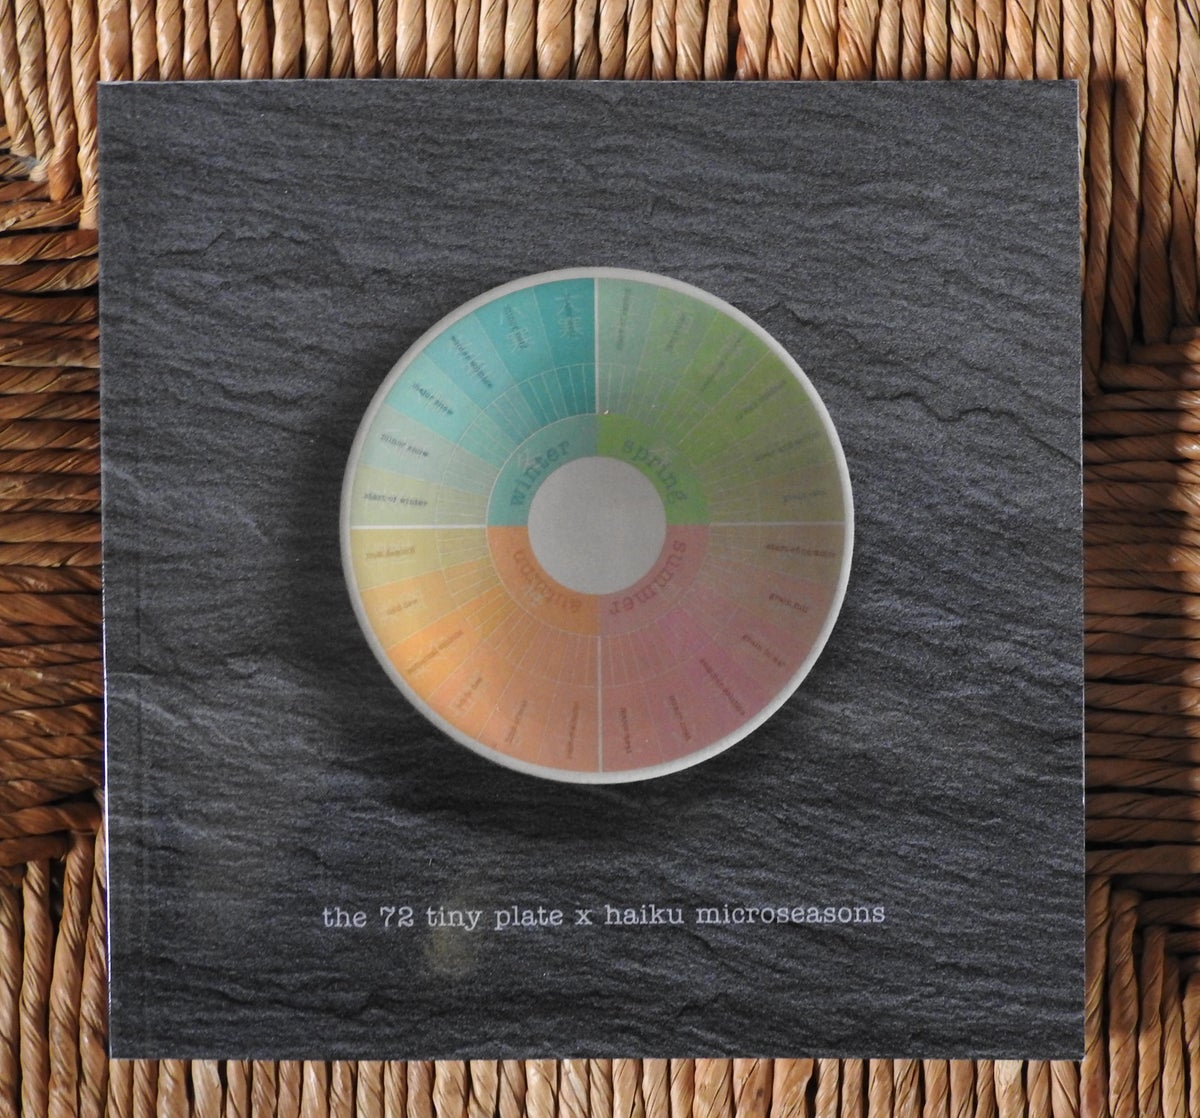 Image of 'the 72 tiny plate x haiku microseasons' book